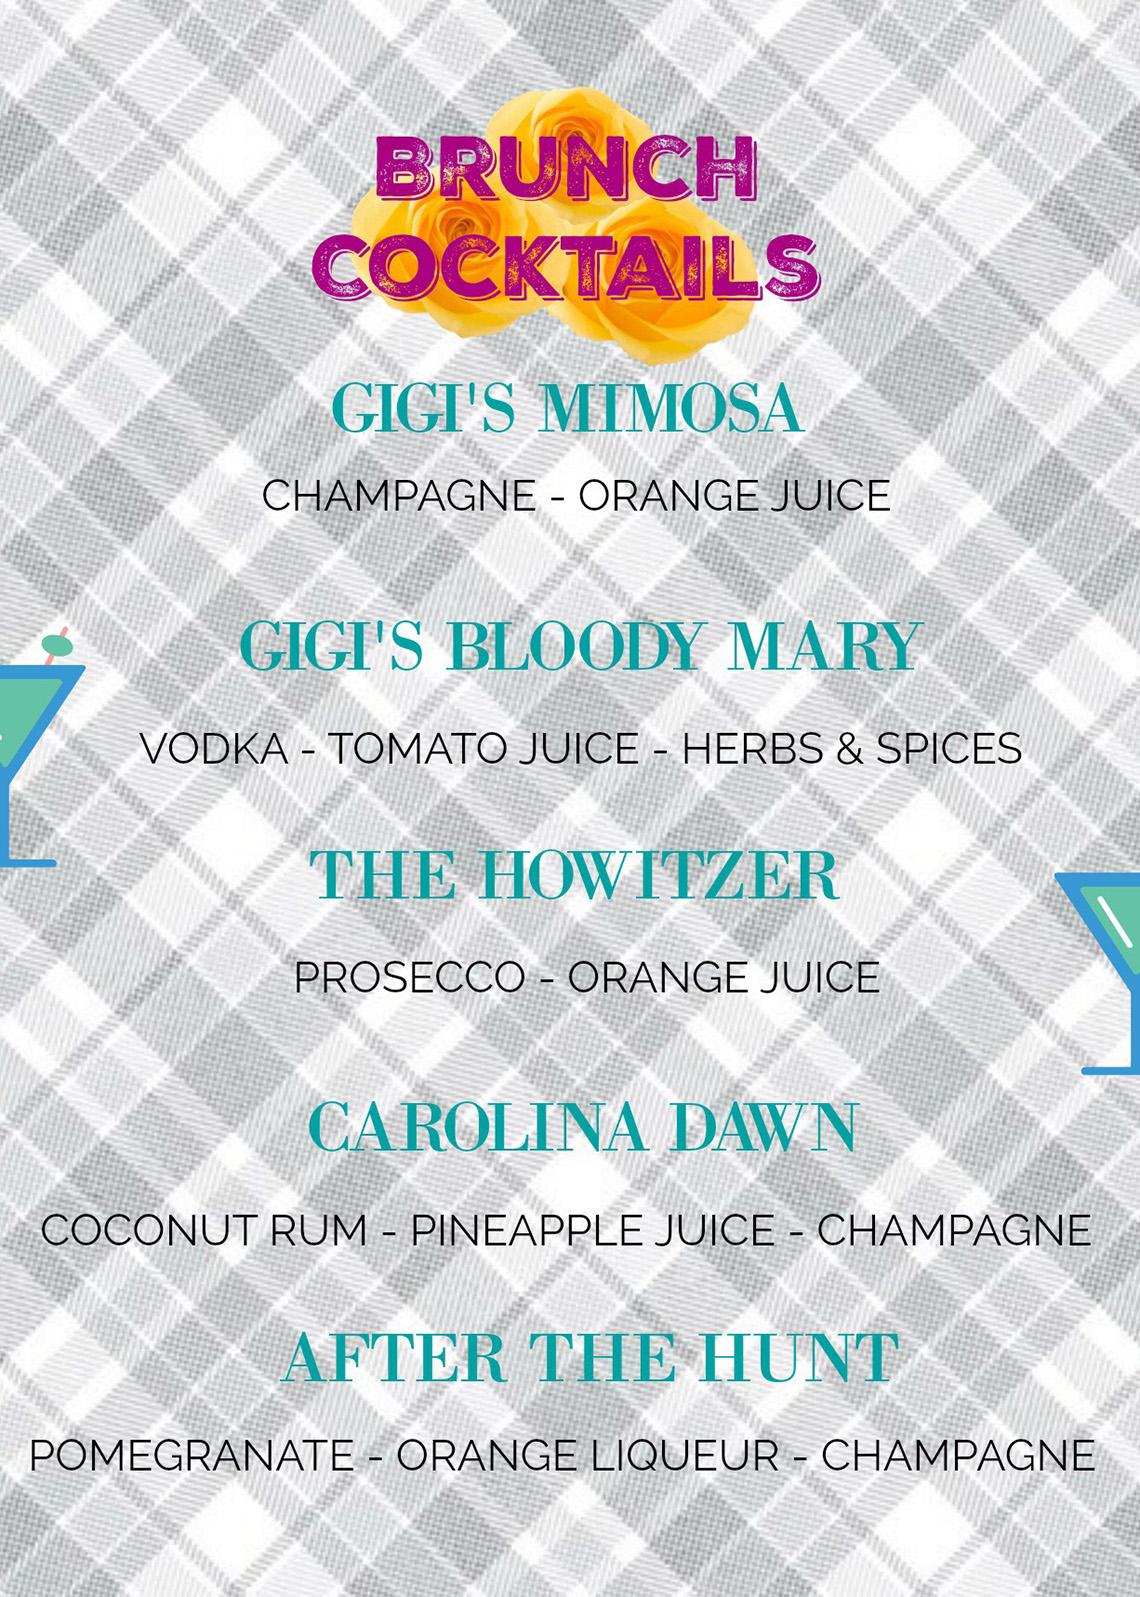 gigis-bruch-cocktail-menu-oct-2017